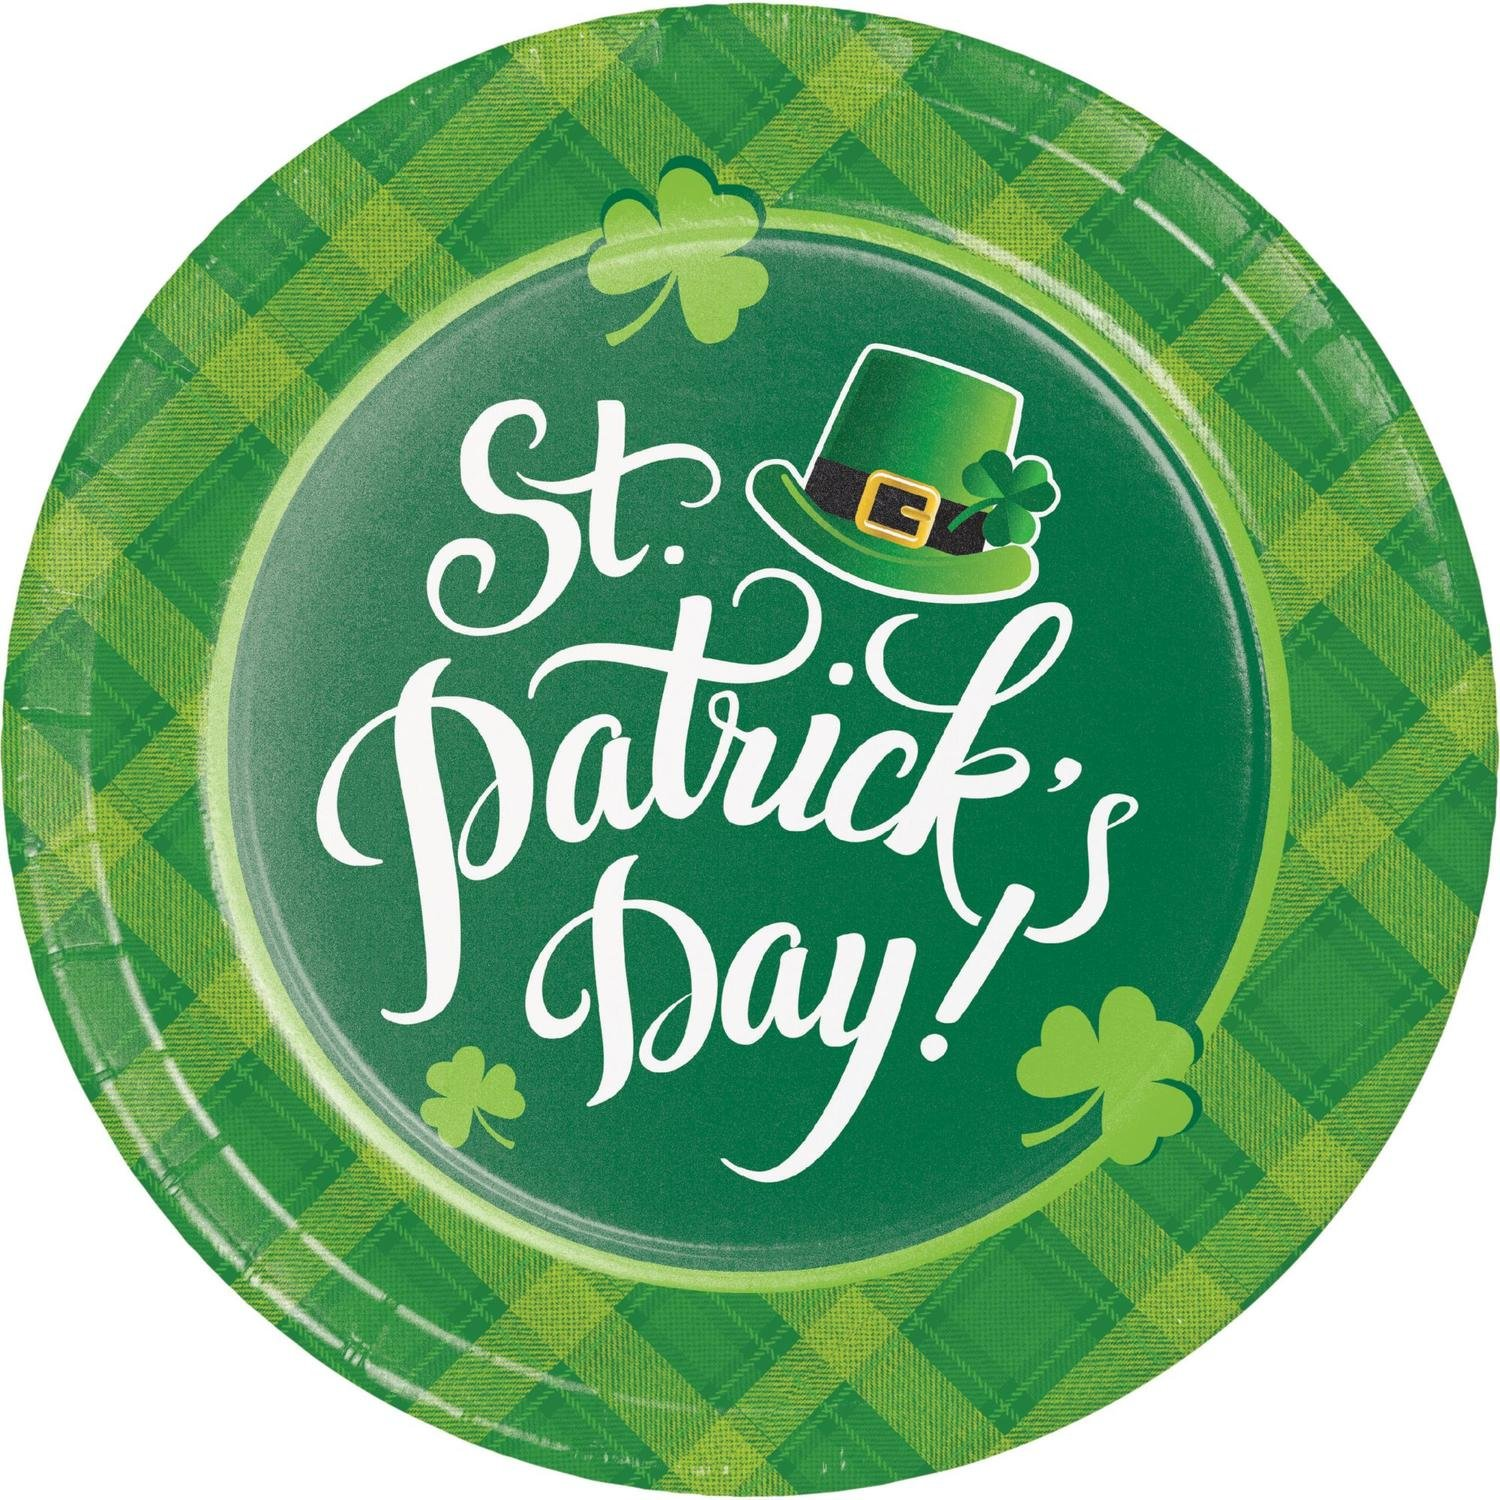 Pack of 96 Dark Green and Light Green St. Patrick's Day Printed Rounded Plate 8.875''